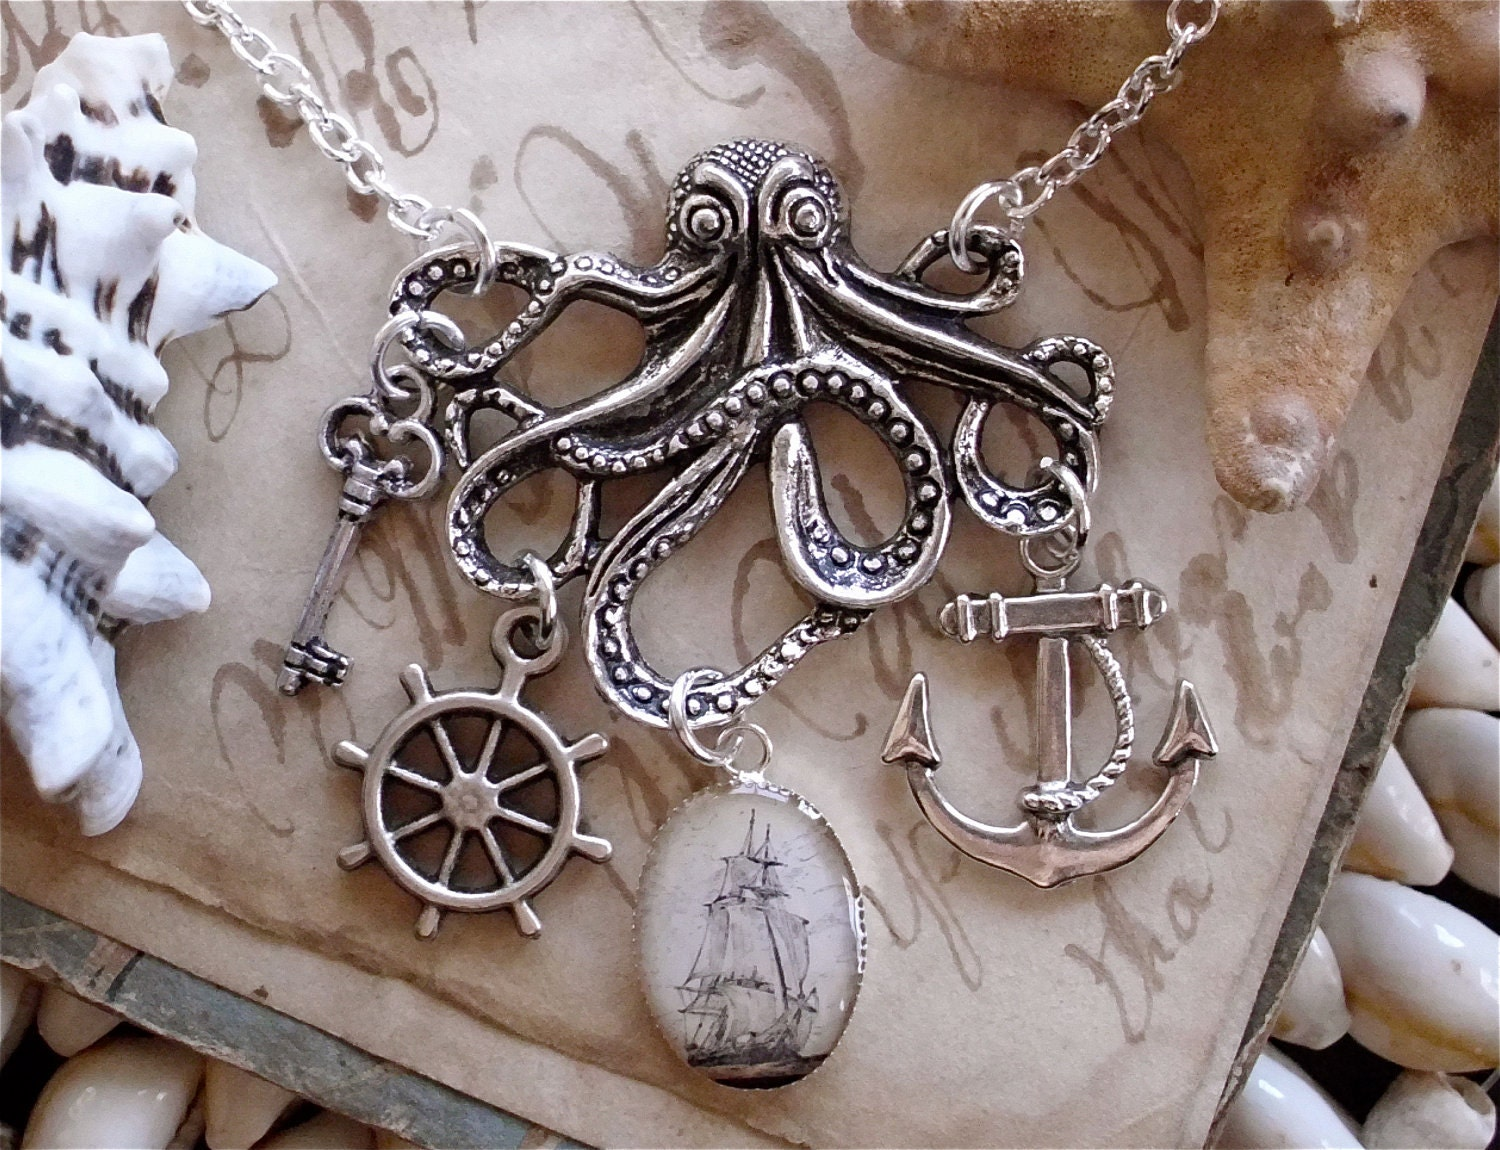 The Kraken in Silver - Pirate Ship - Octopus Necklace - Anchor - Captains Wheel - Treasure Key - Antique Nautical Print Charm Necklace - TheLysineContingency